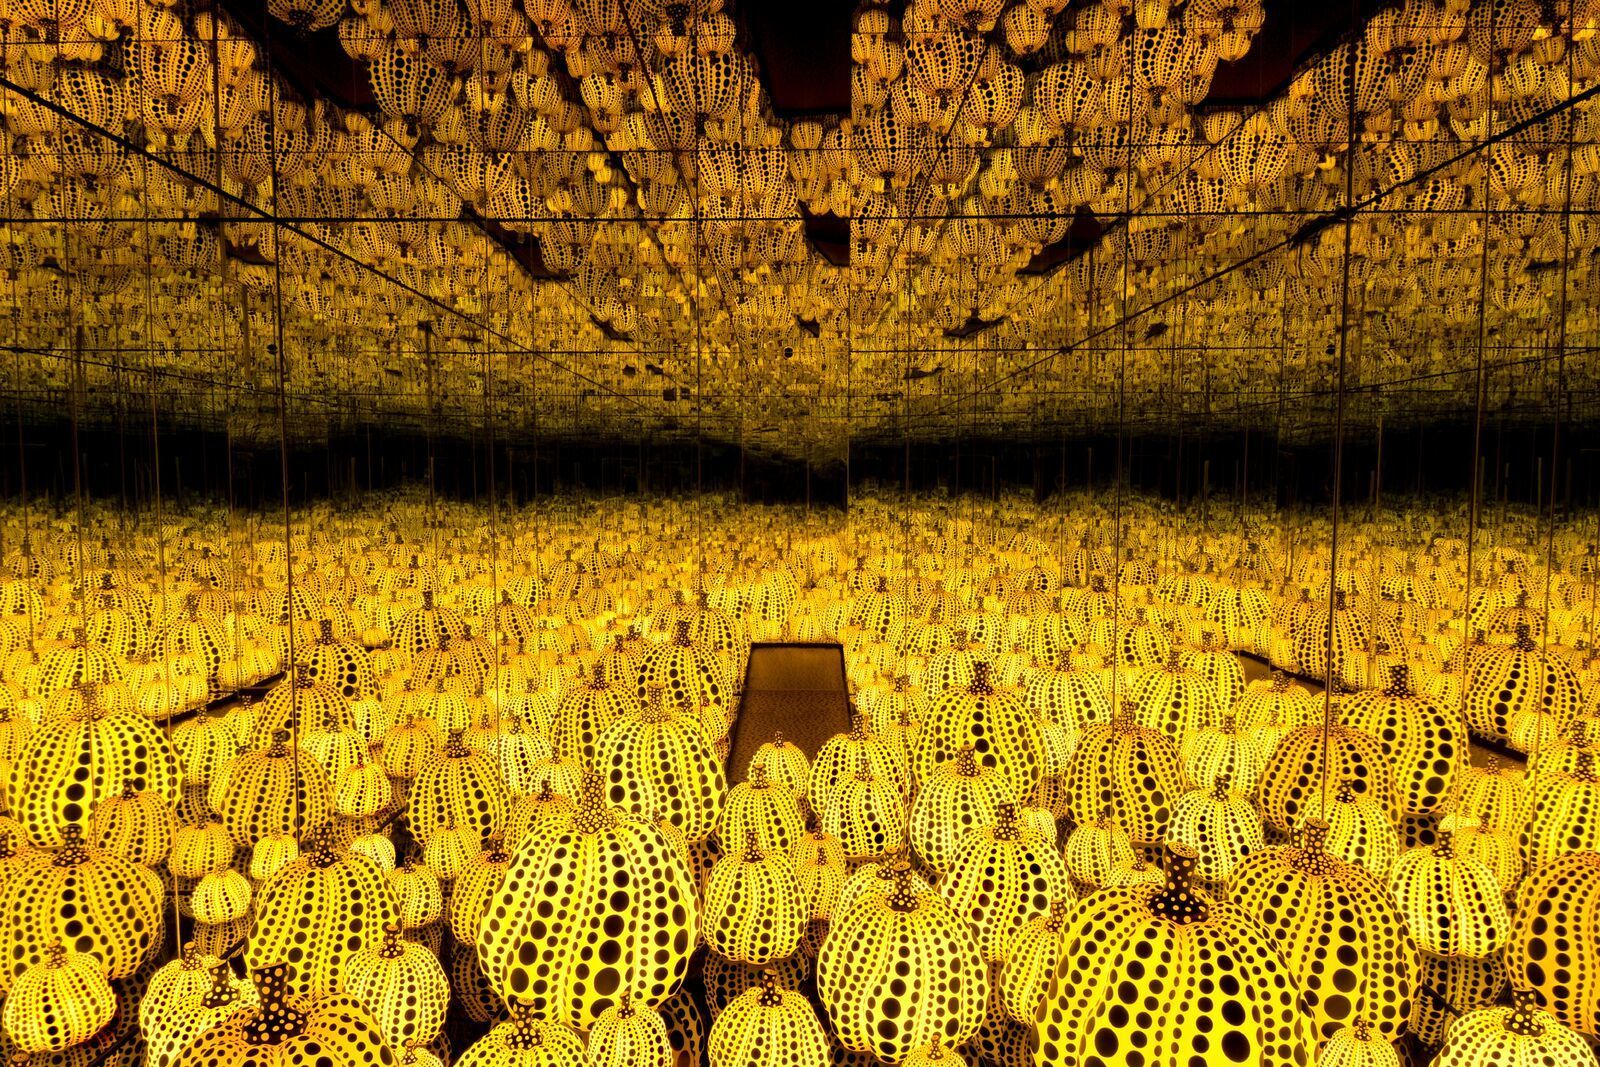 Infinity mirrored room all the eternal love i have for the pumpkins 1 bt2tlj